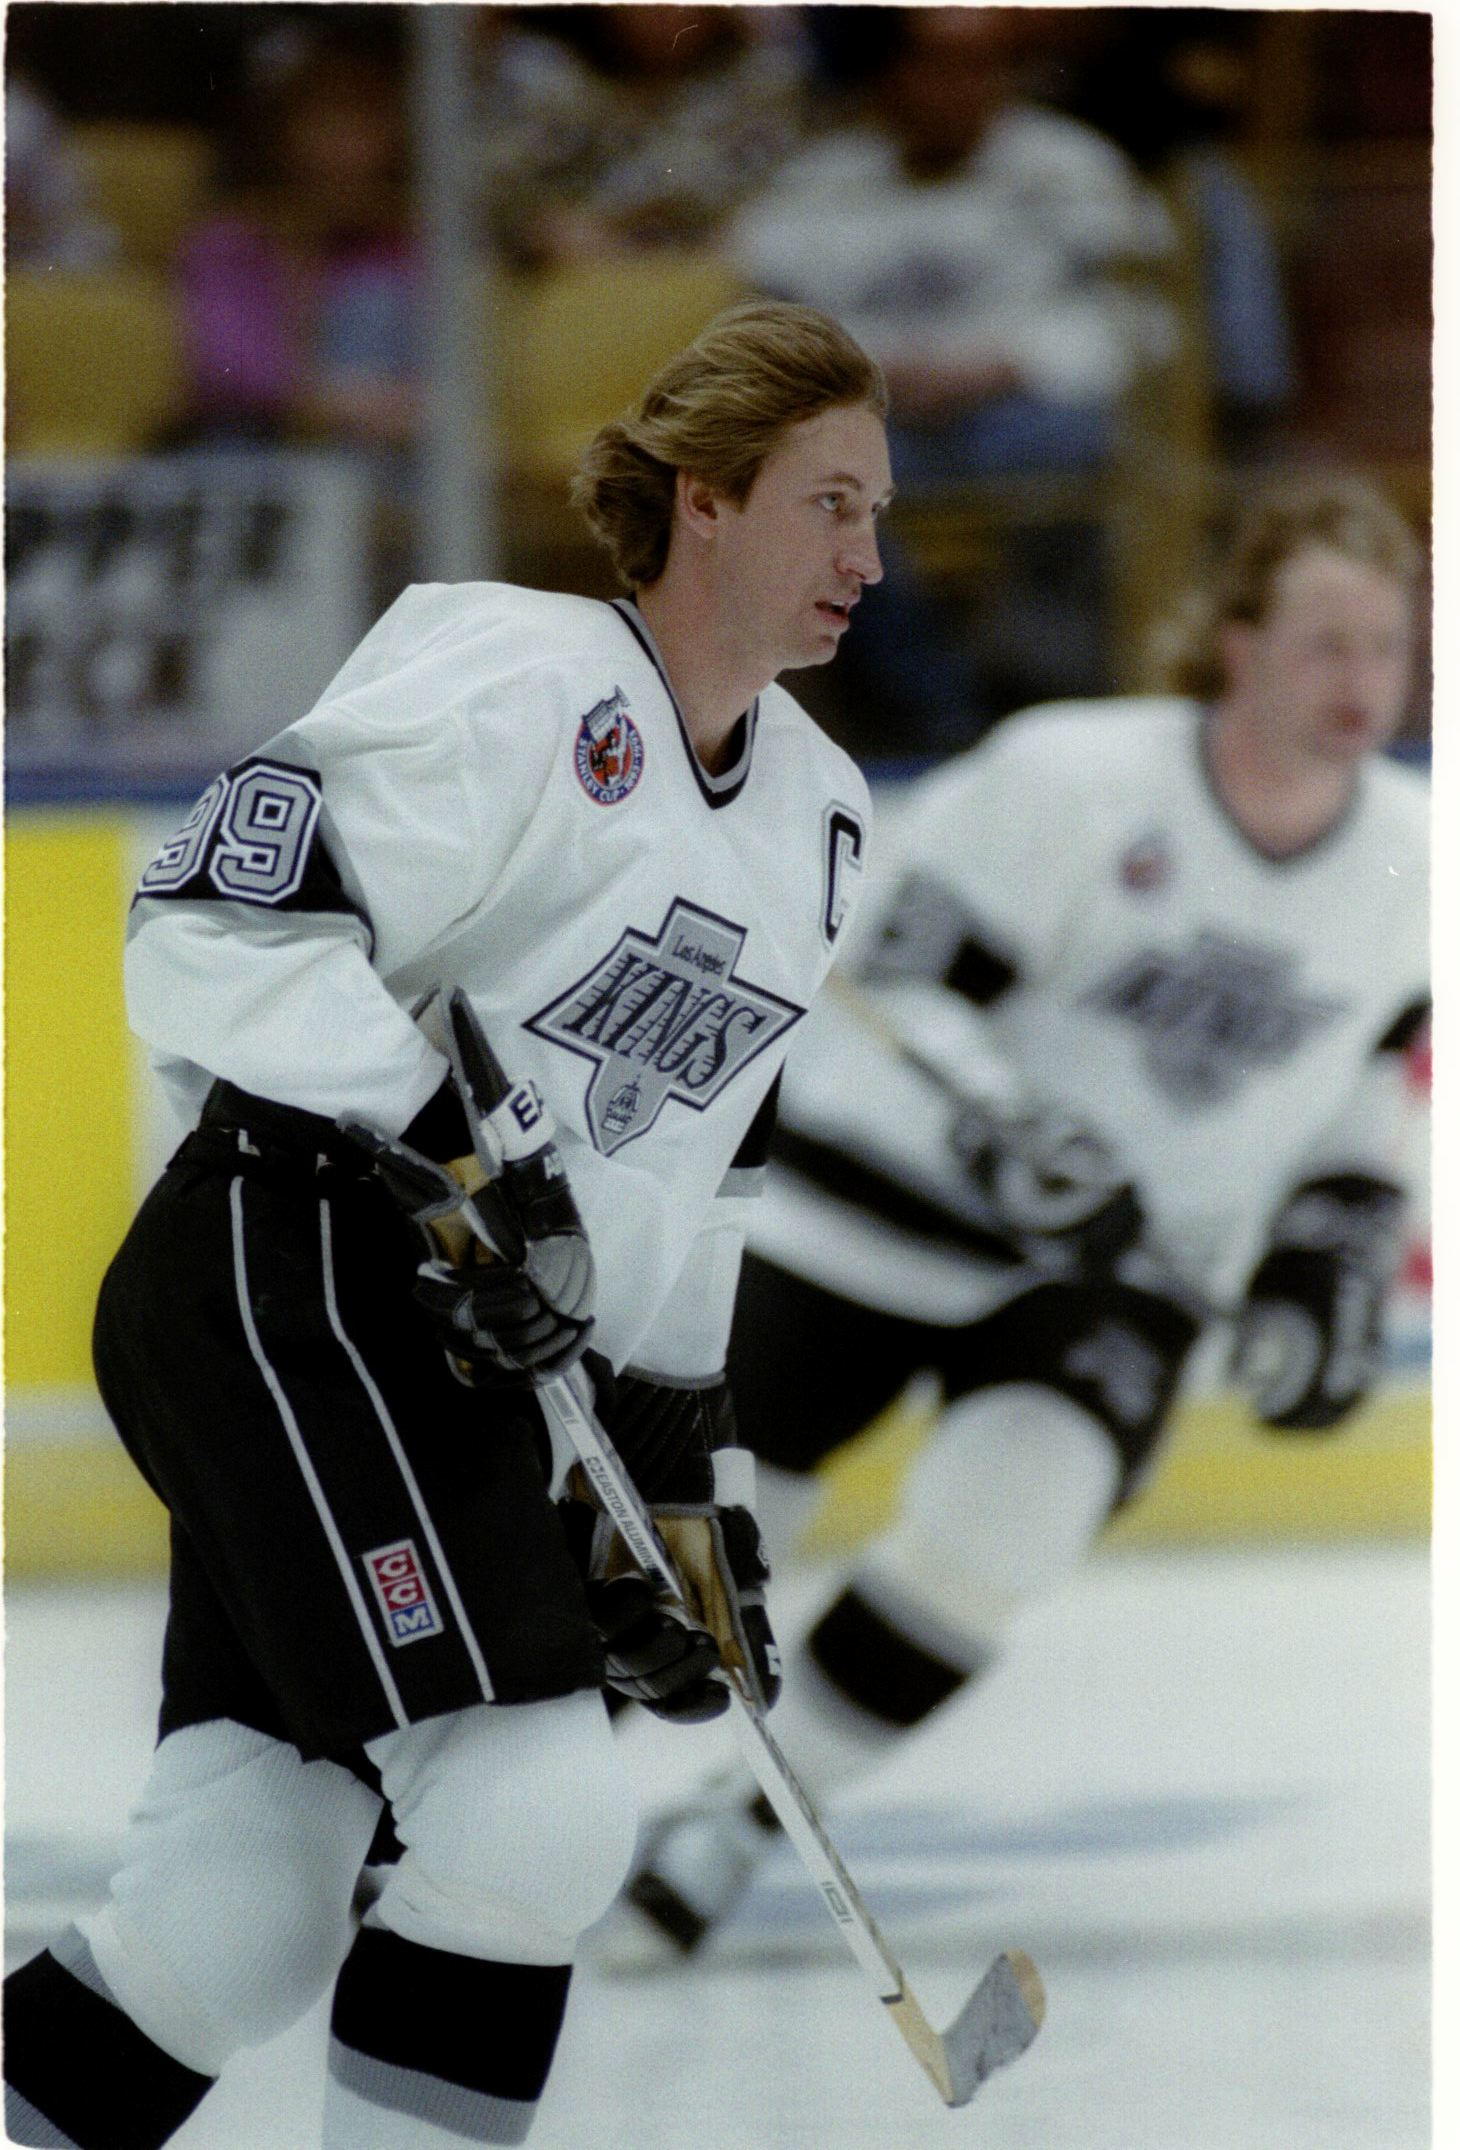 6 JANUARY 1993 LOS ANGELES KINGS CAPTAIN WAYNE GRETZKY RETURNS AFTER RECOVERING FROM BACK SURGERY DU